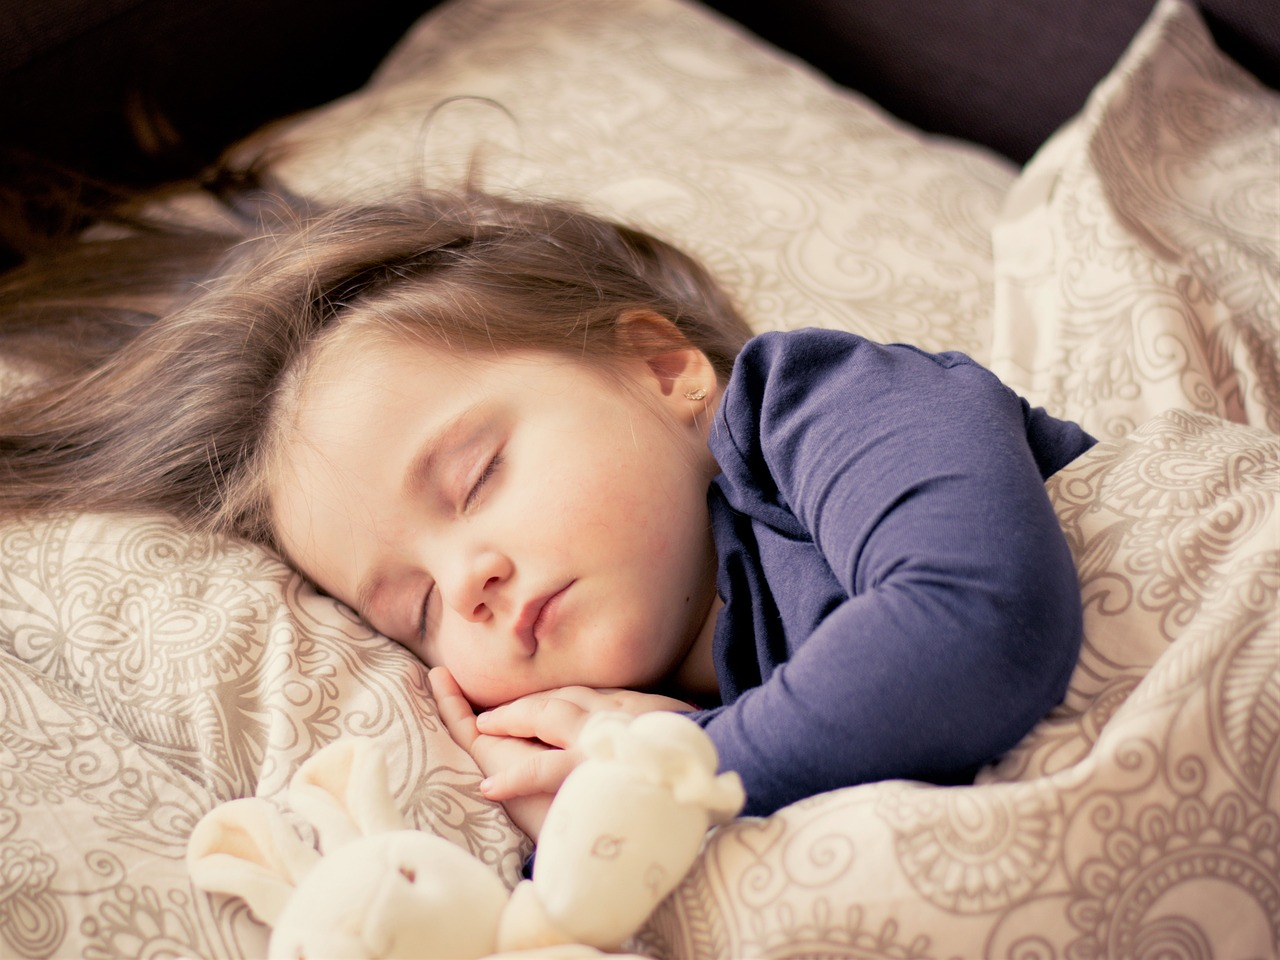 HOW TO GET YOUR CHILD TO SLEEP WHEN THE CLOCKS GO FORWARD